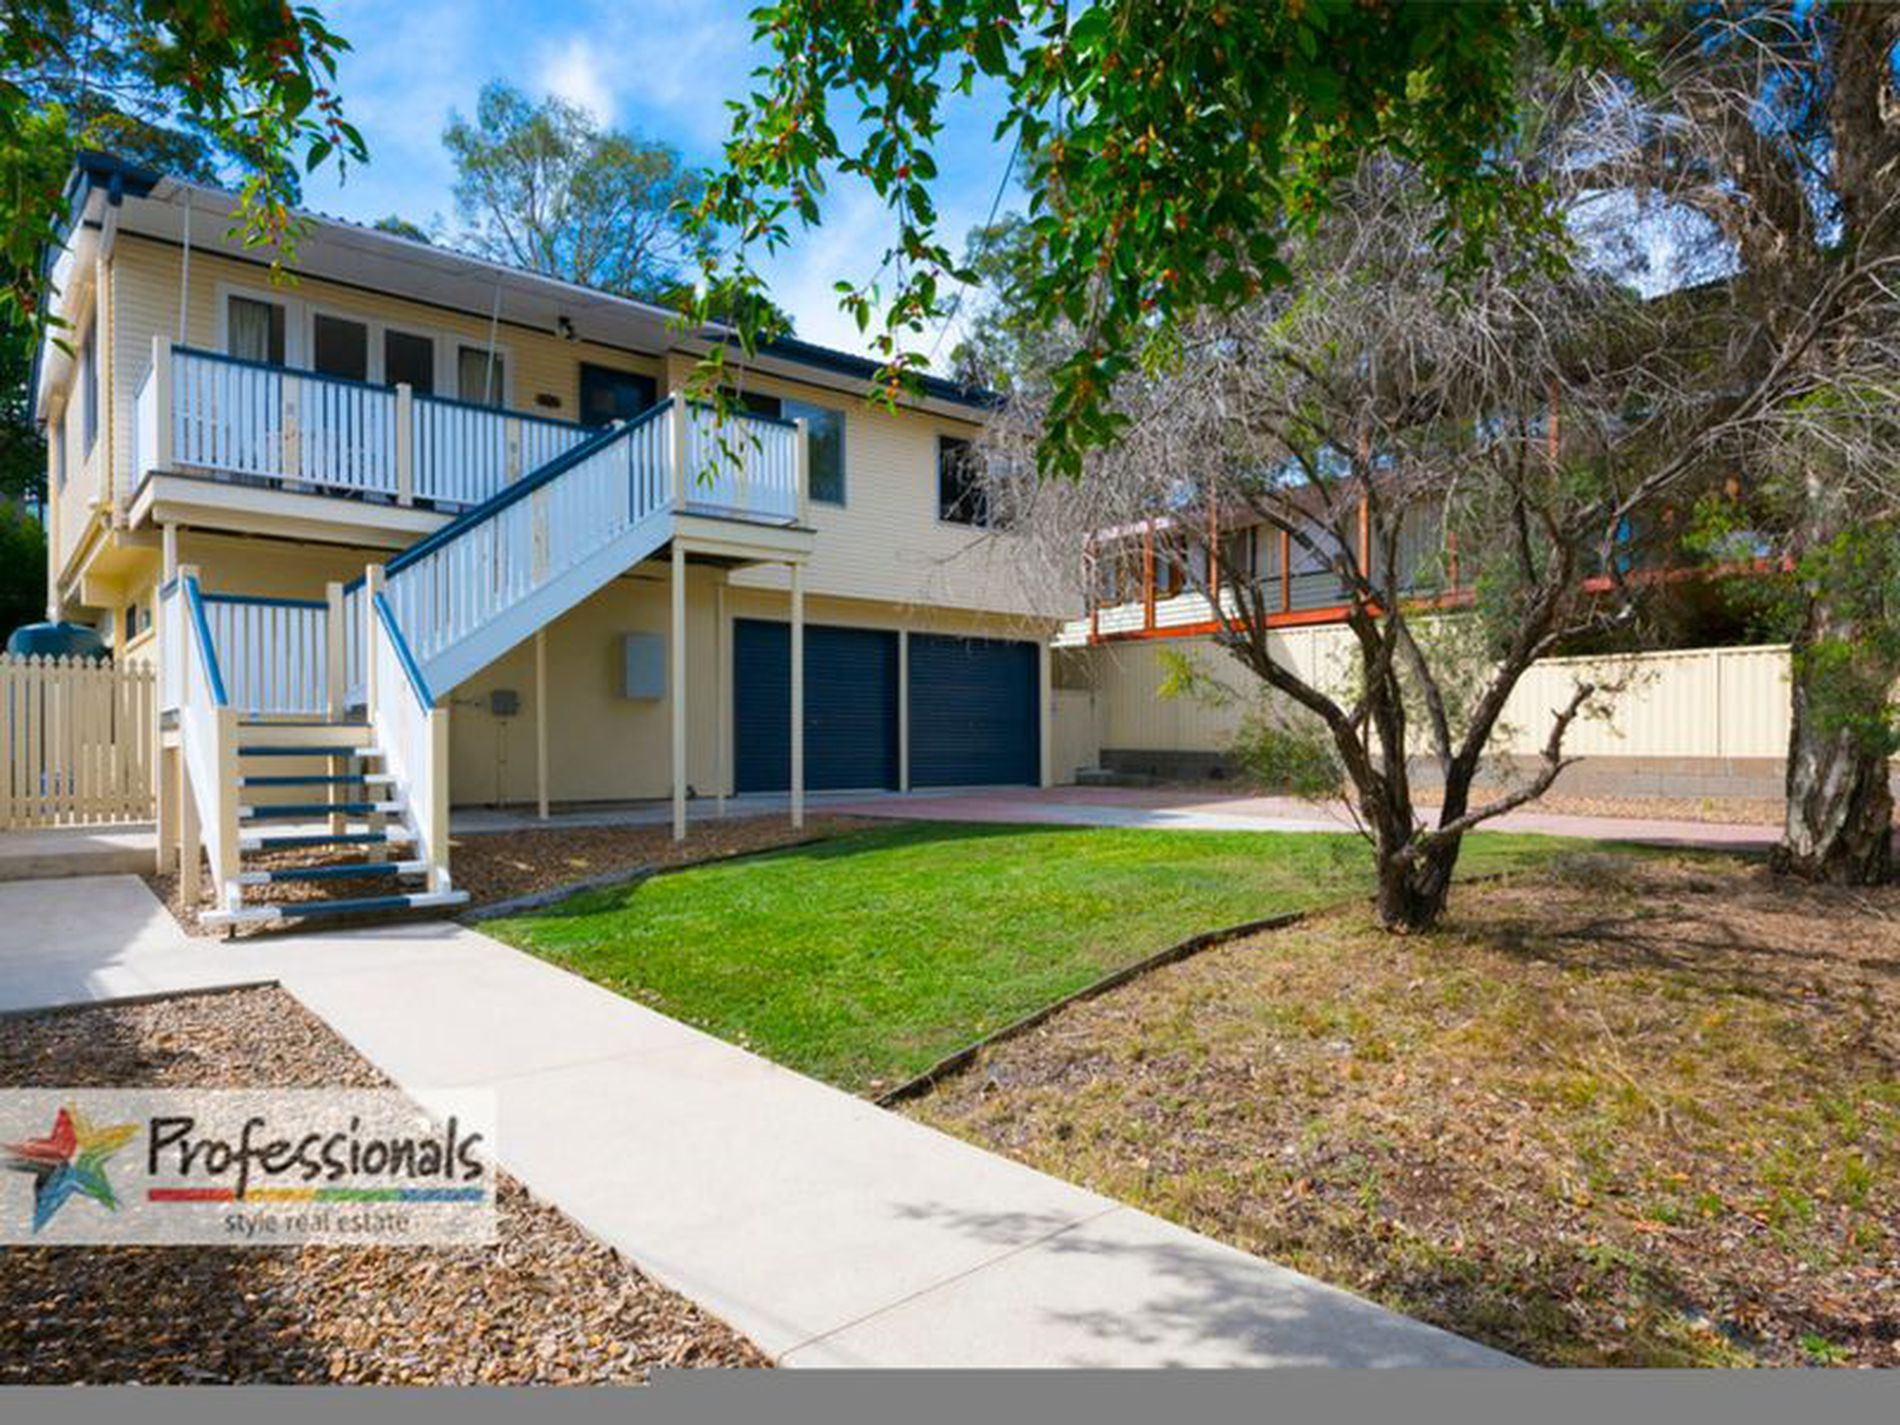 450 Nursery Road, Holland Park